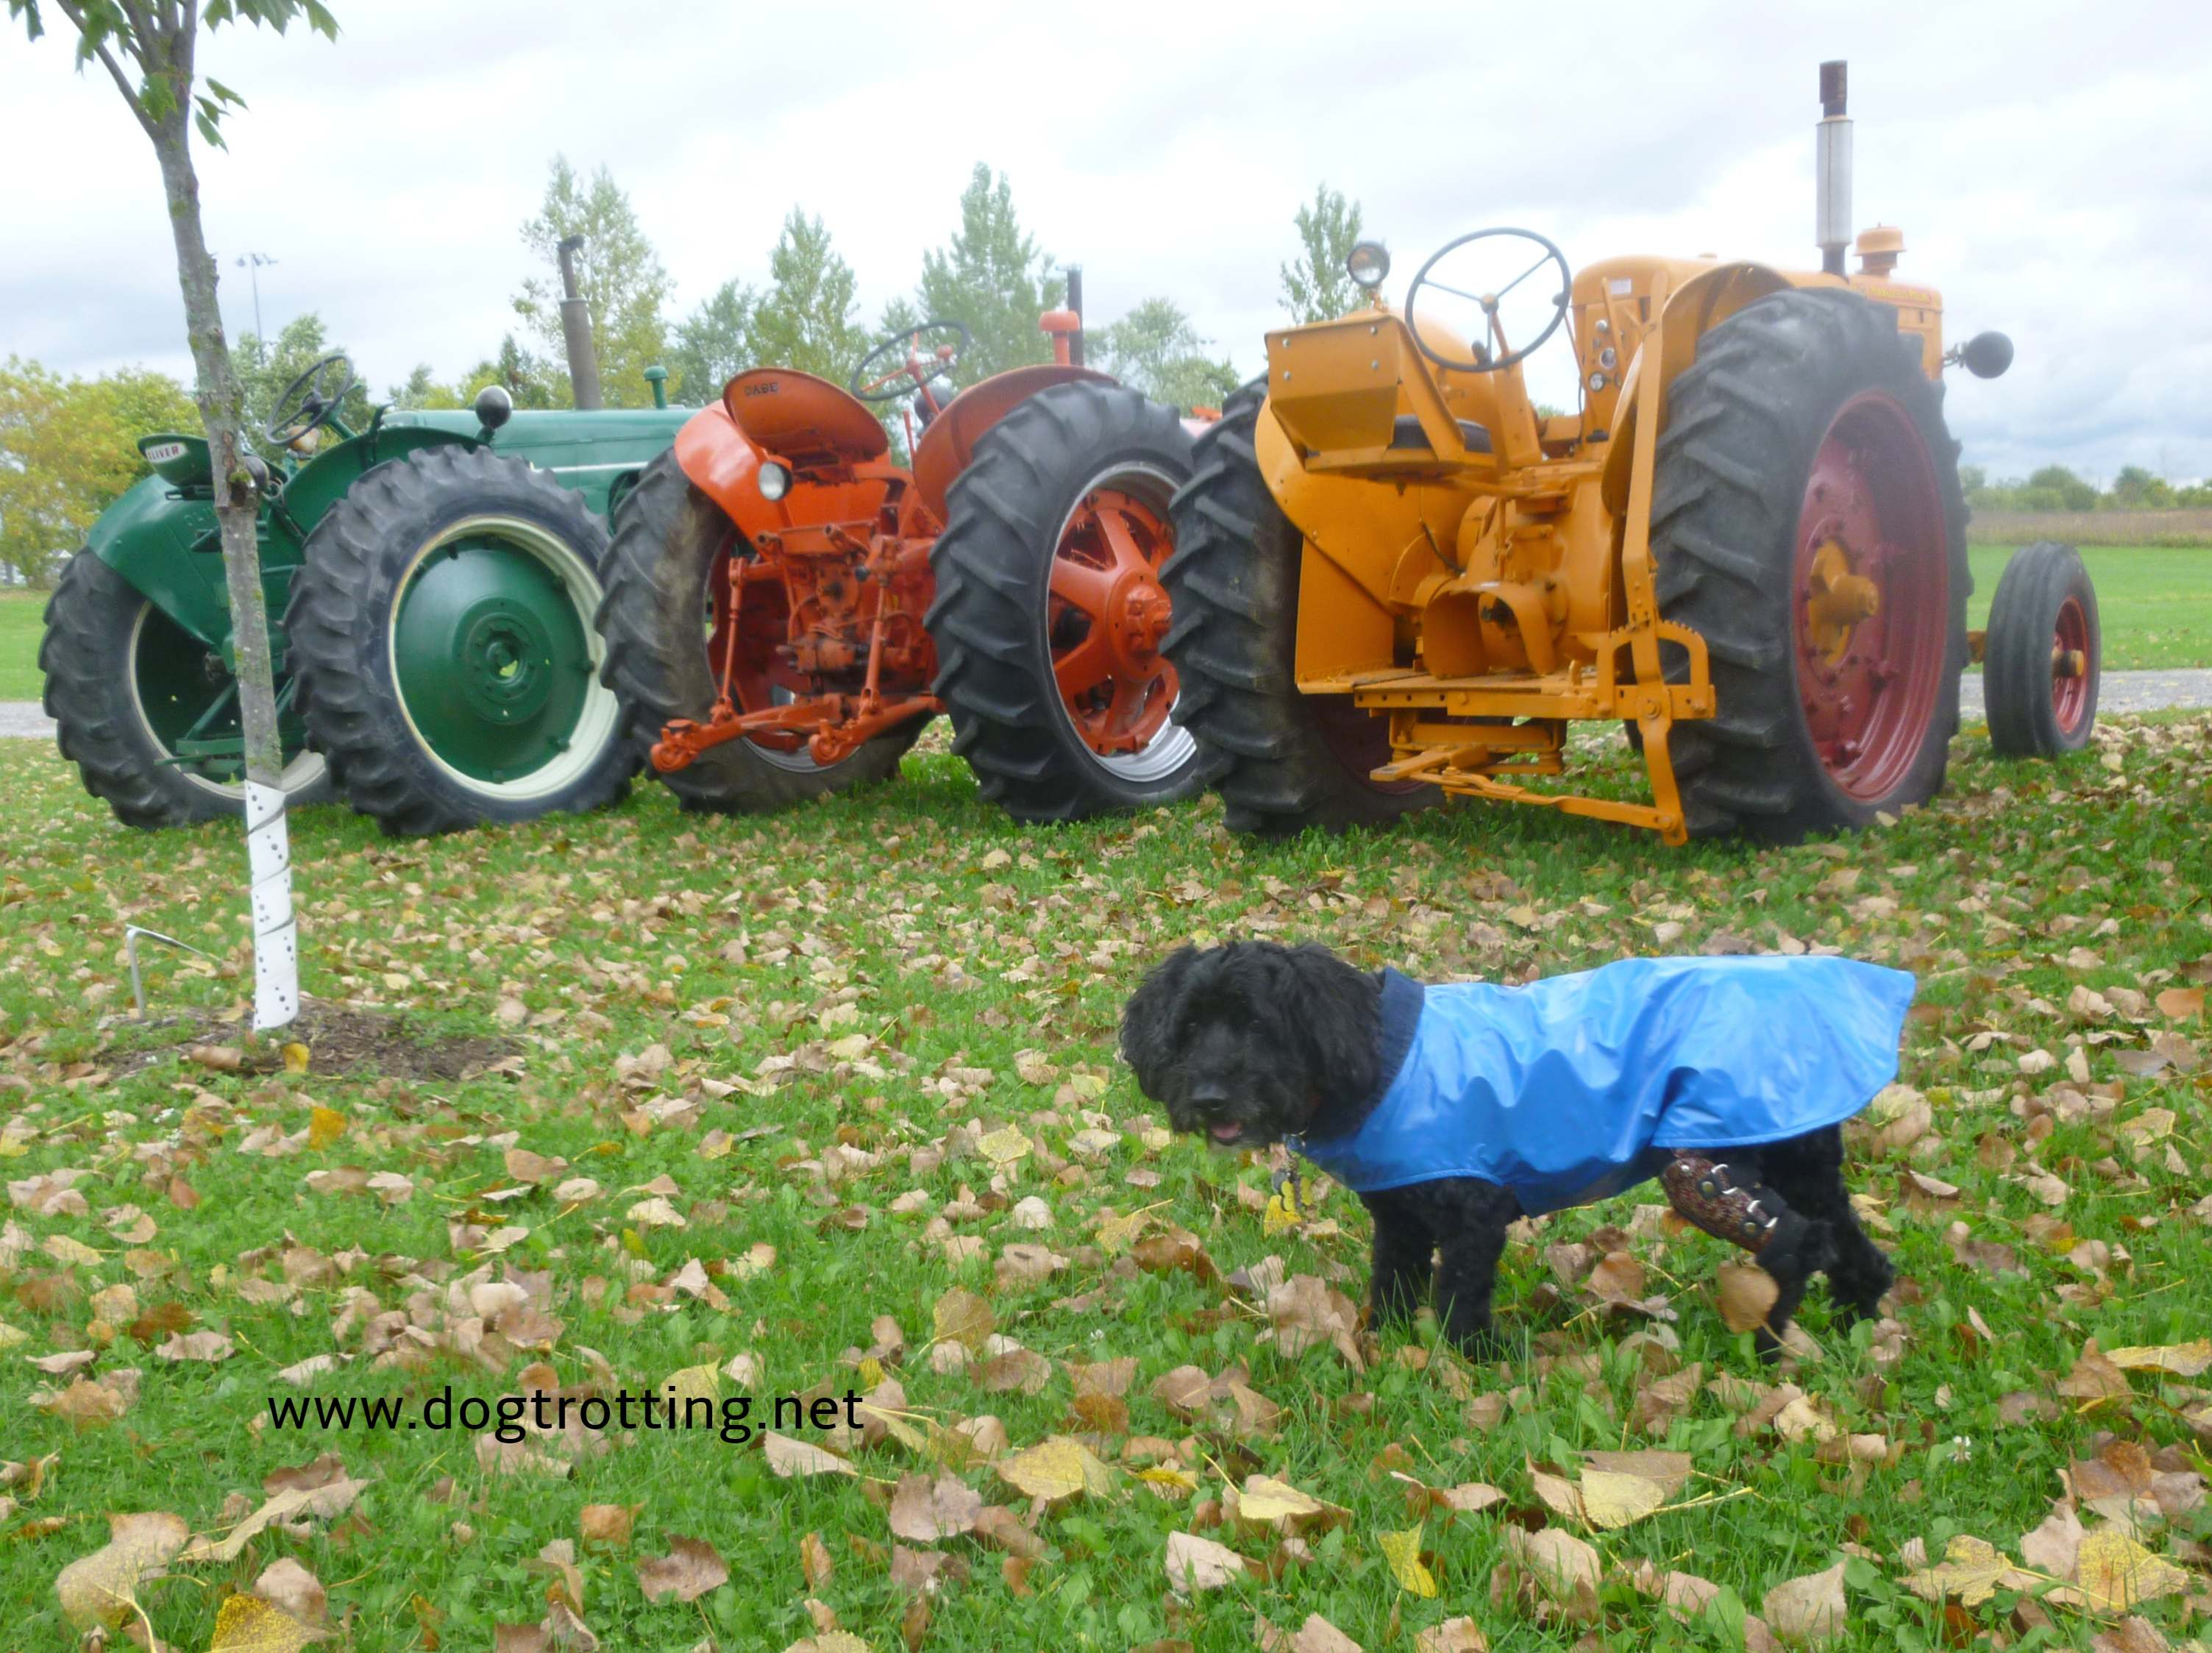 dog in front of antique tractors